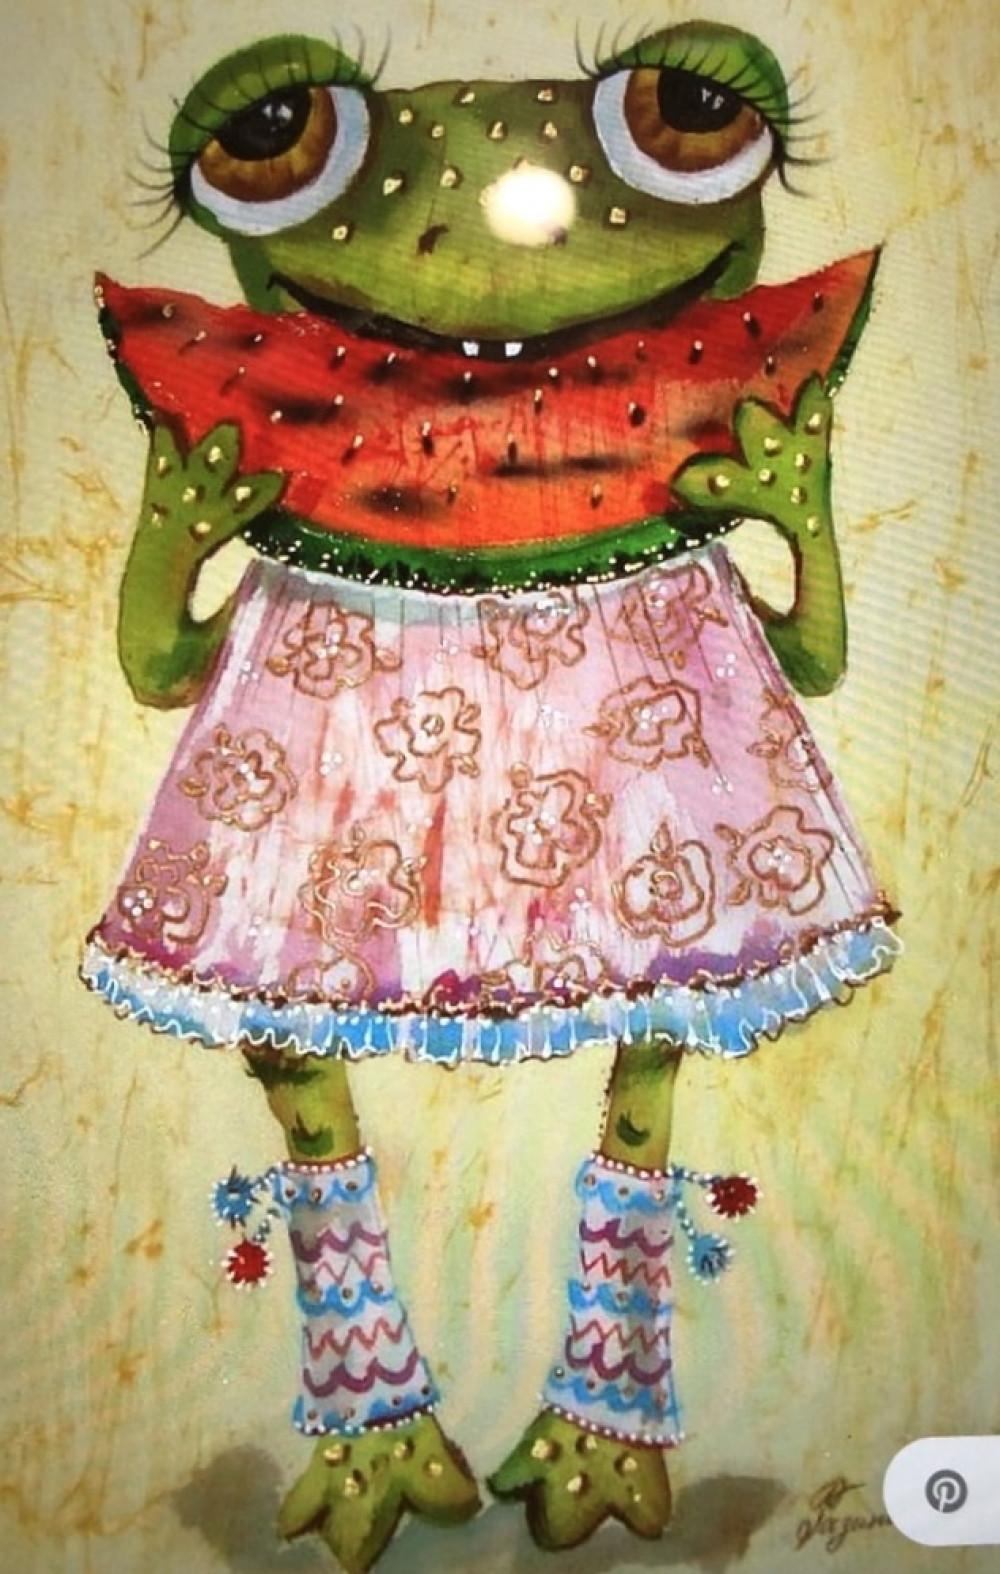 Can you paint a frog eating a watermelon? I bet you can!